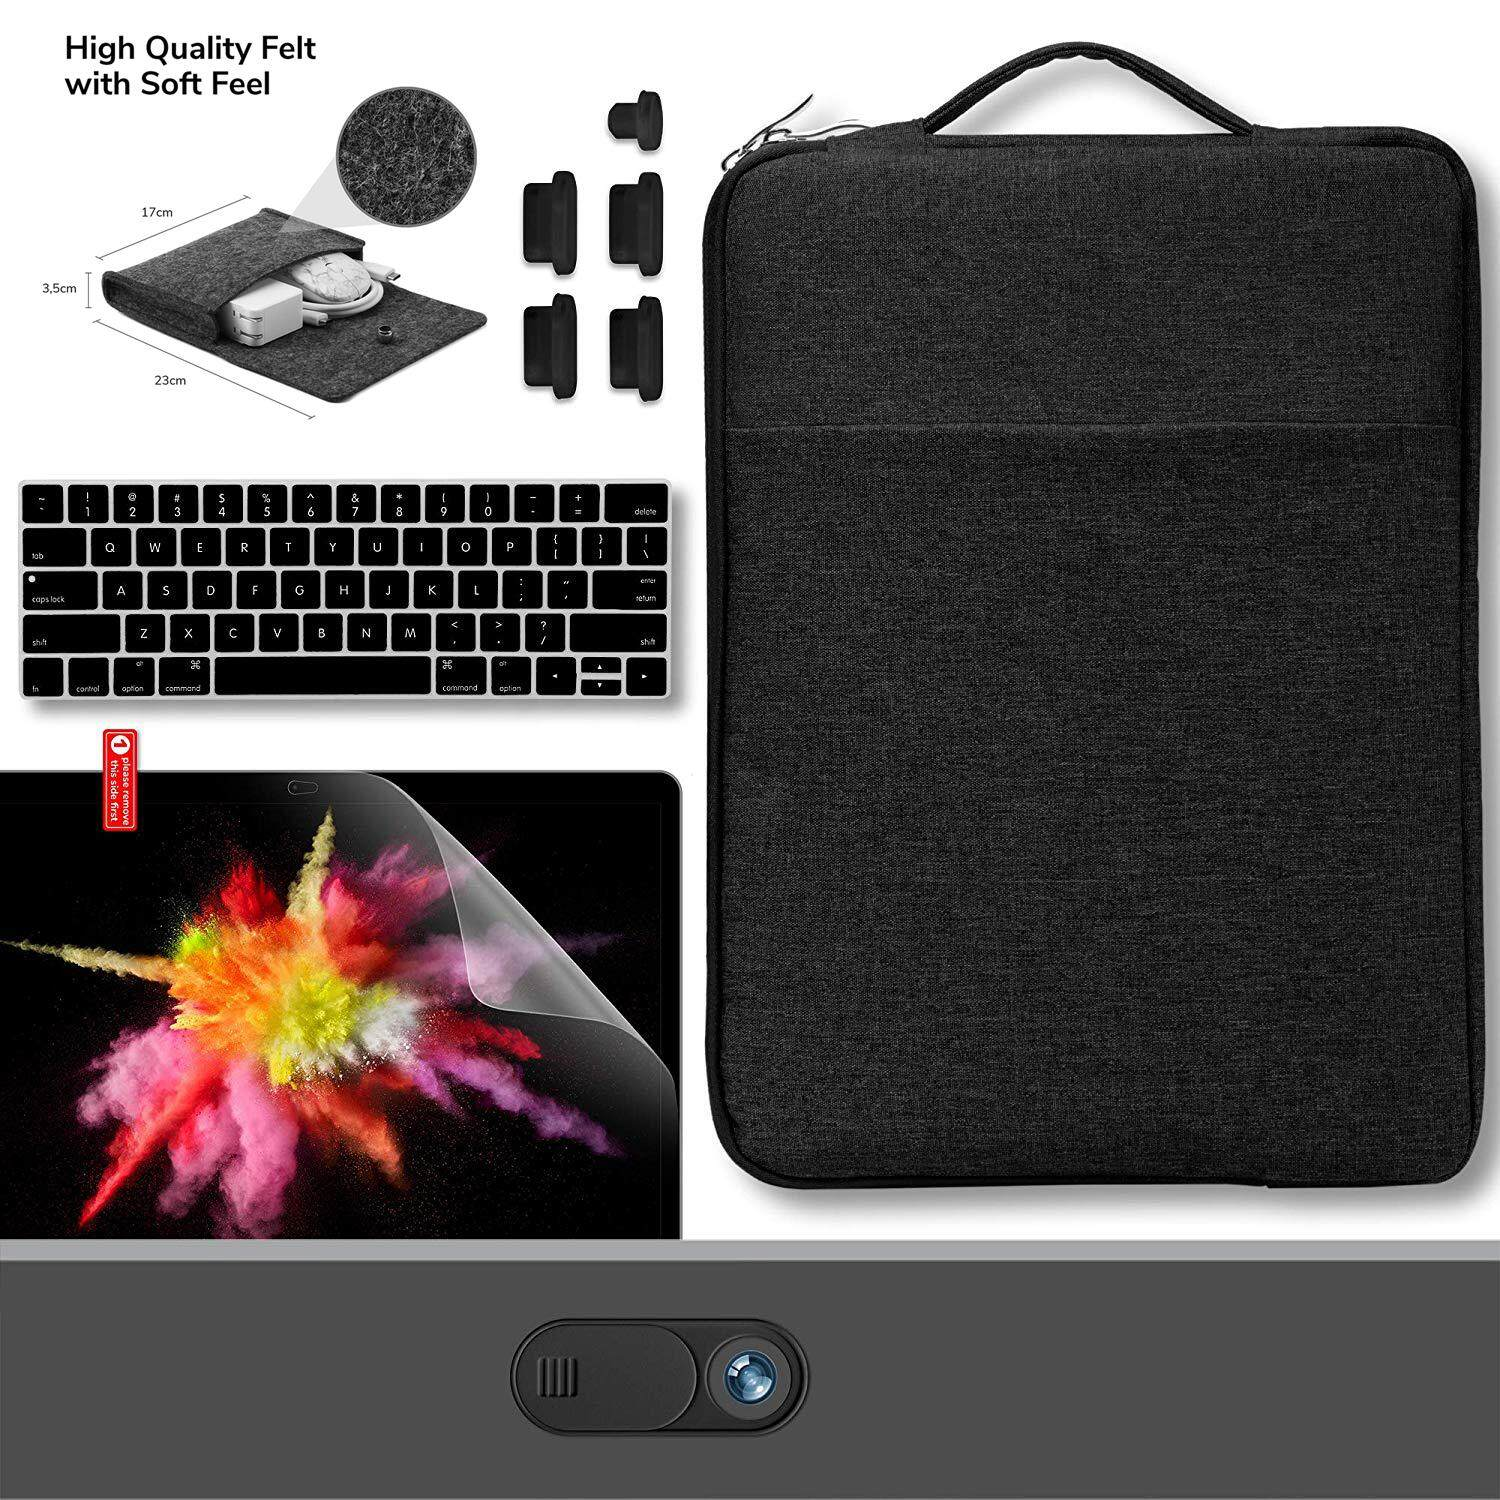 MacBook Pro 13 Inch Touch Bar A1989/A1706/A1708 2016-2018, (6 in1)Sleeve, Privacy Webcam Cover, Anti Dust Plugs, Felt Storage Bag Travel Pouch for Accessories, Keyboard Cover Screen Protector,Keyboard Cover Set